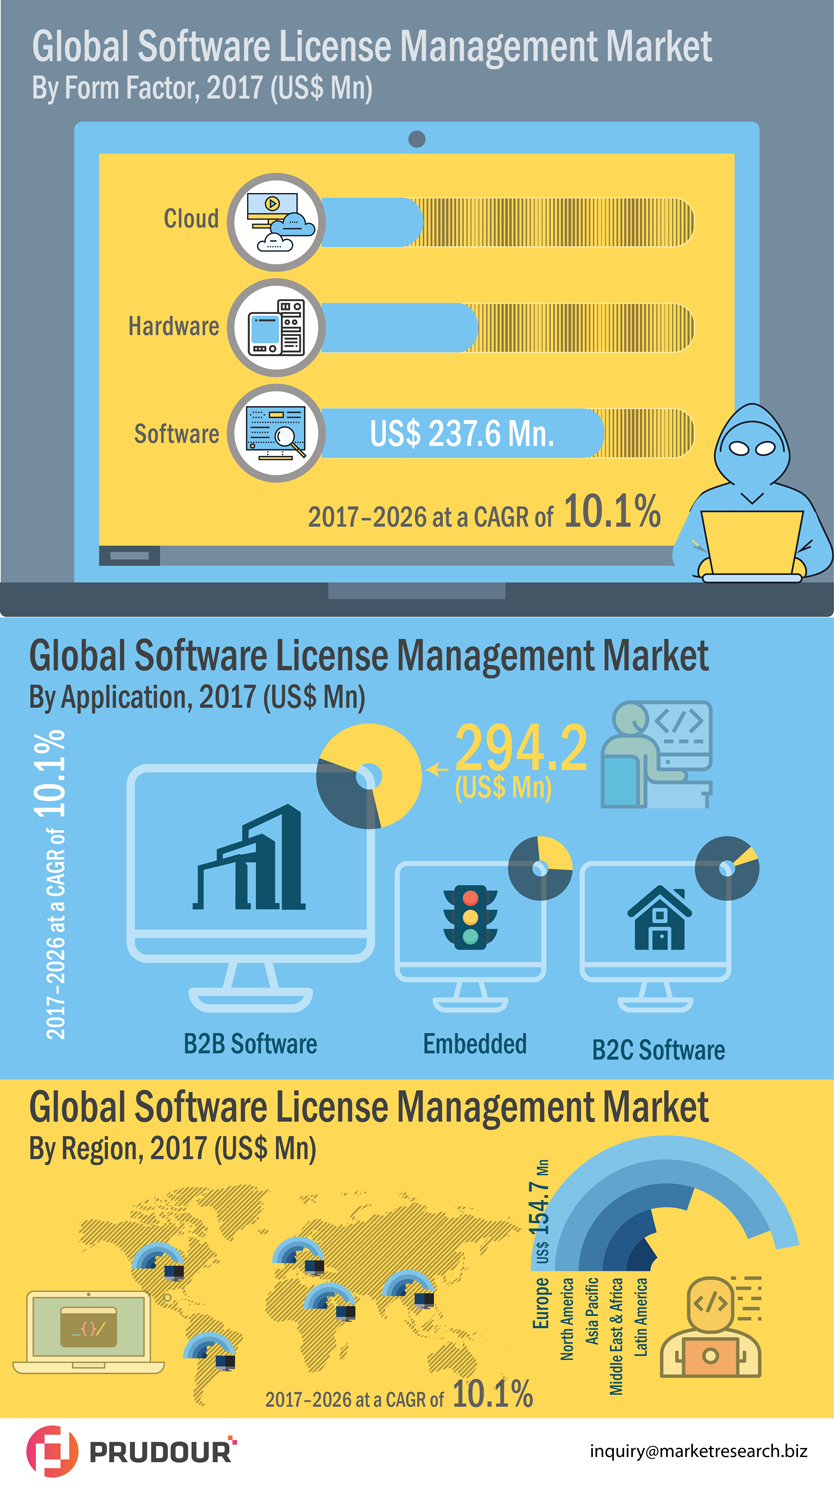 2026 US$ 2,336.7 Mn: Global Software License Management Market is expected to reach US$ 2,336.7 Mn in 2026